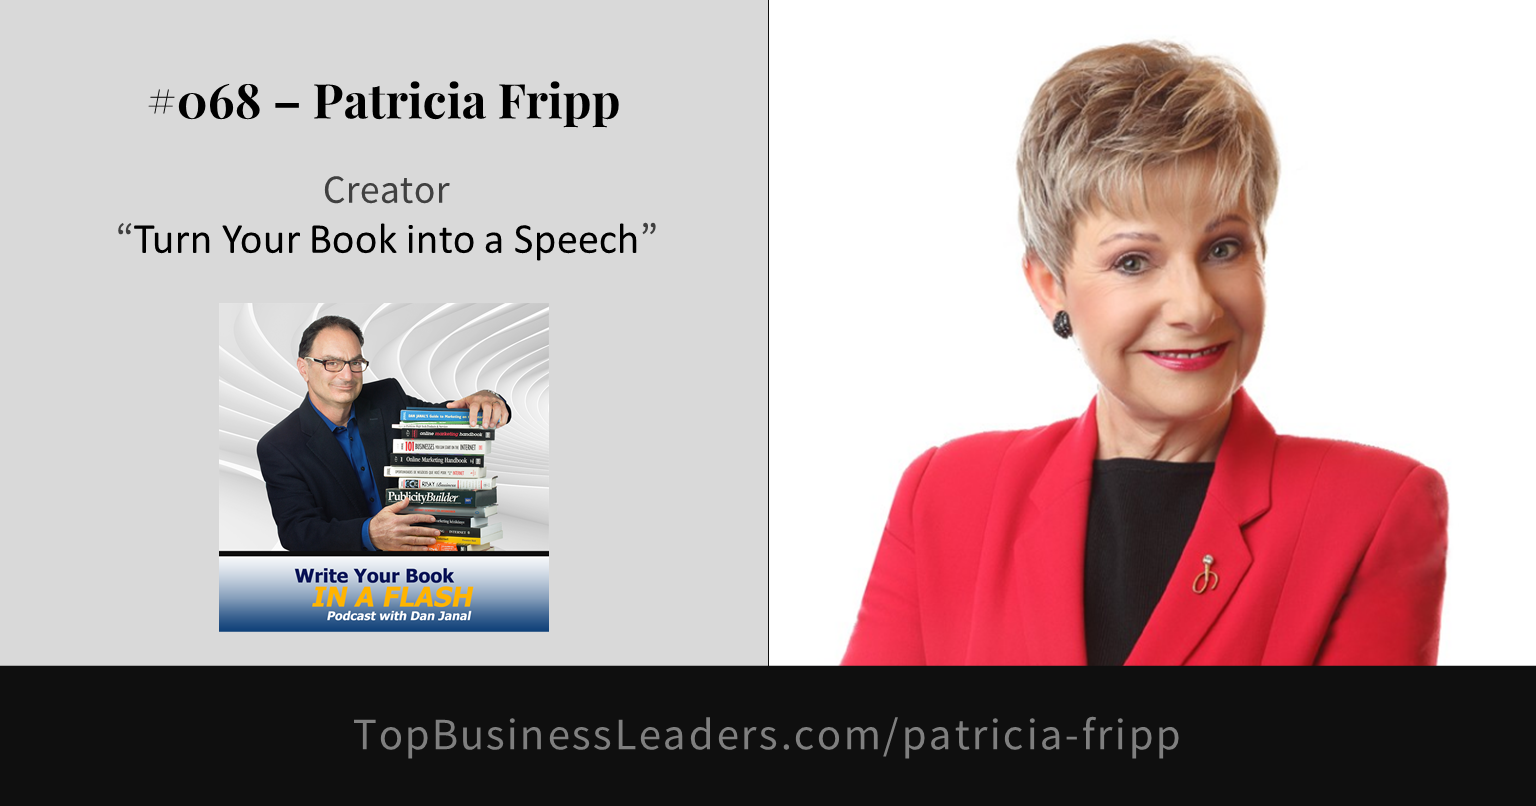 patricia-fripp-topic-turn-your-book-into-a-speech